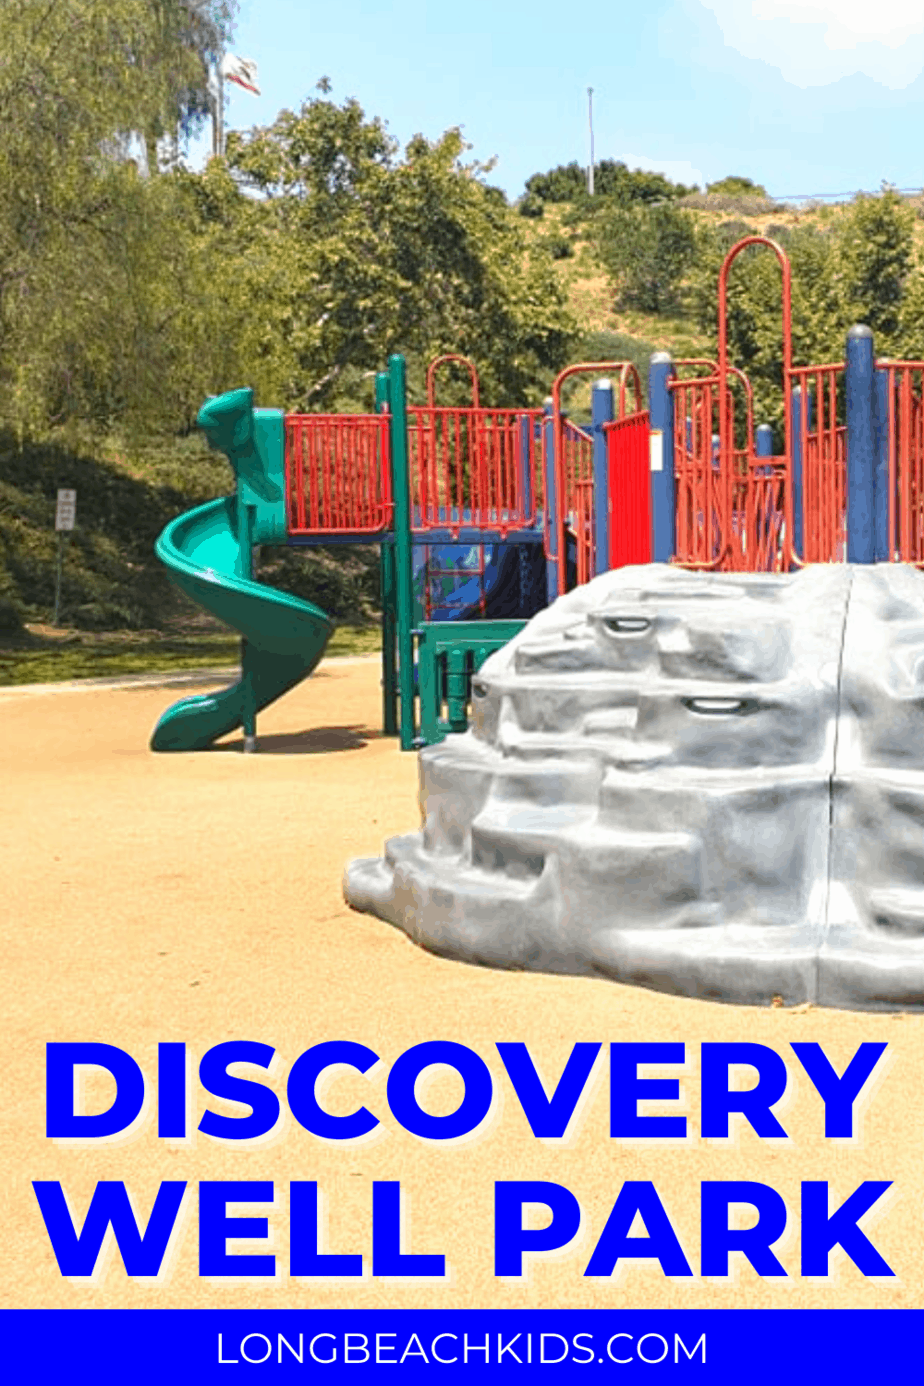 Looking for a fun, secluded and sand free park? Check out Discovery Well Park in Signal Hill